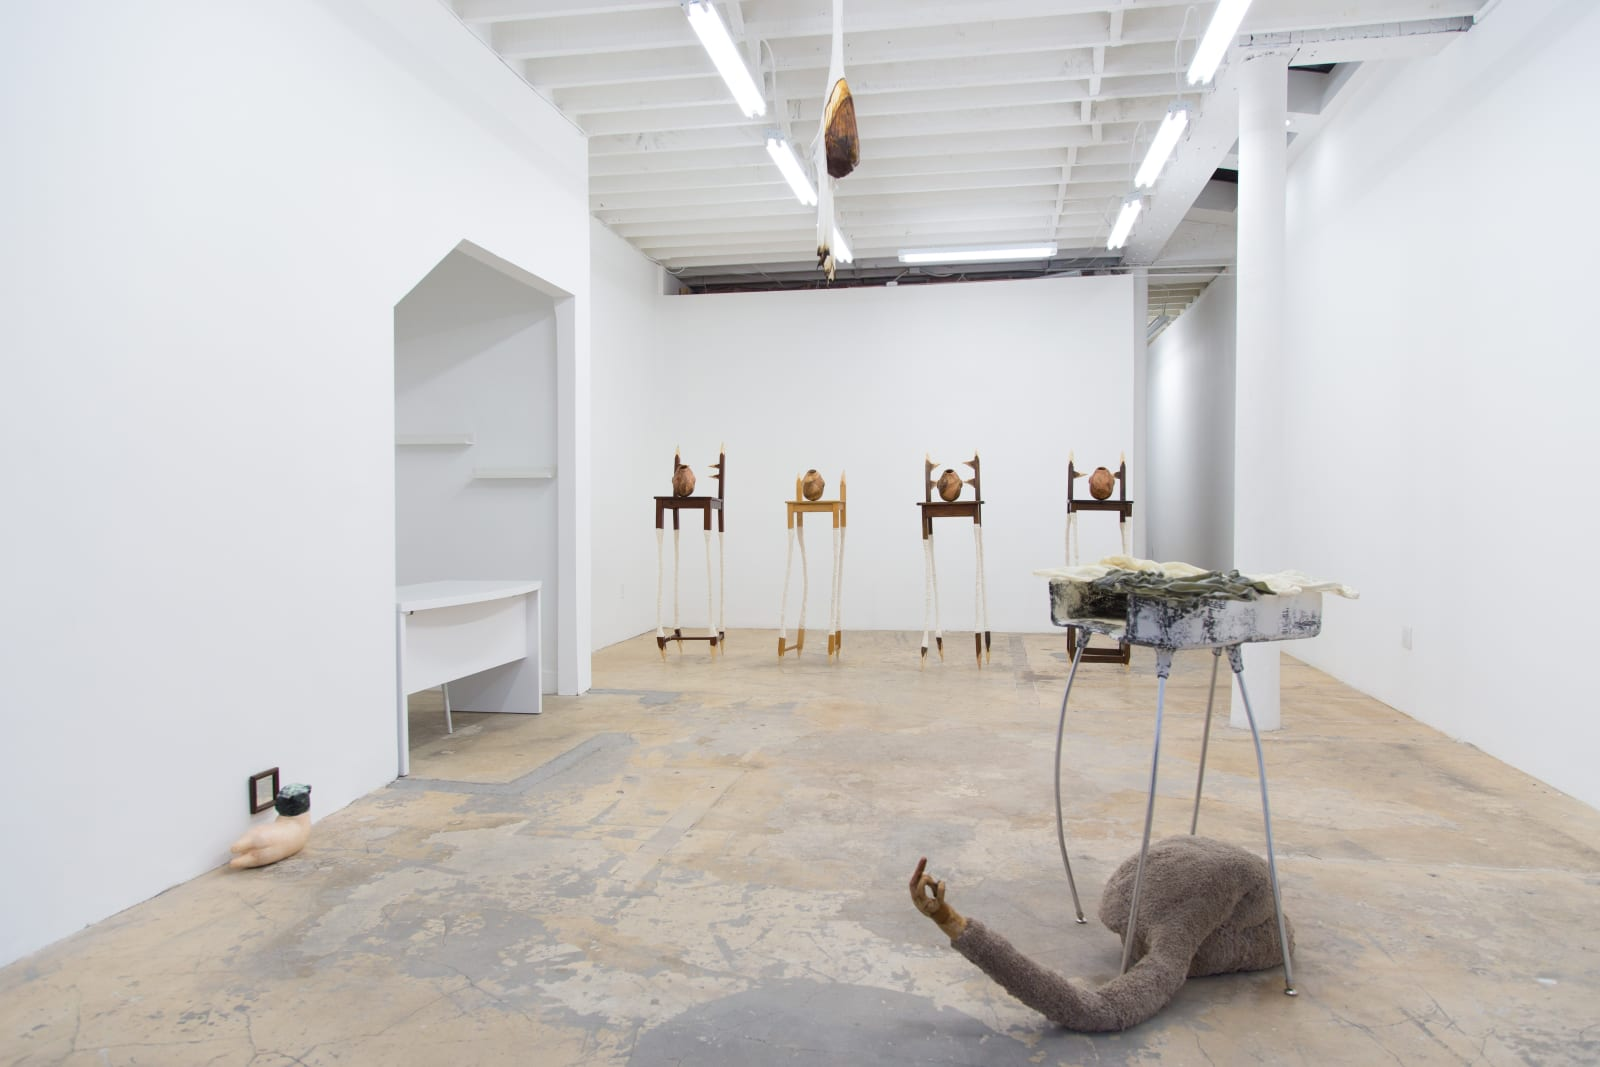 Installation View, marrow. Photo: Yubo Dong